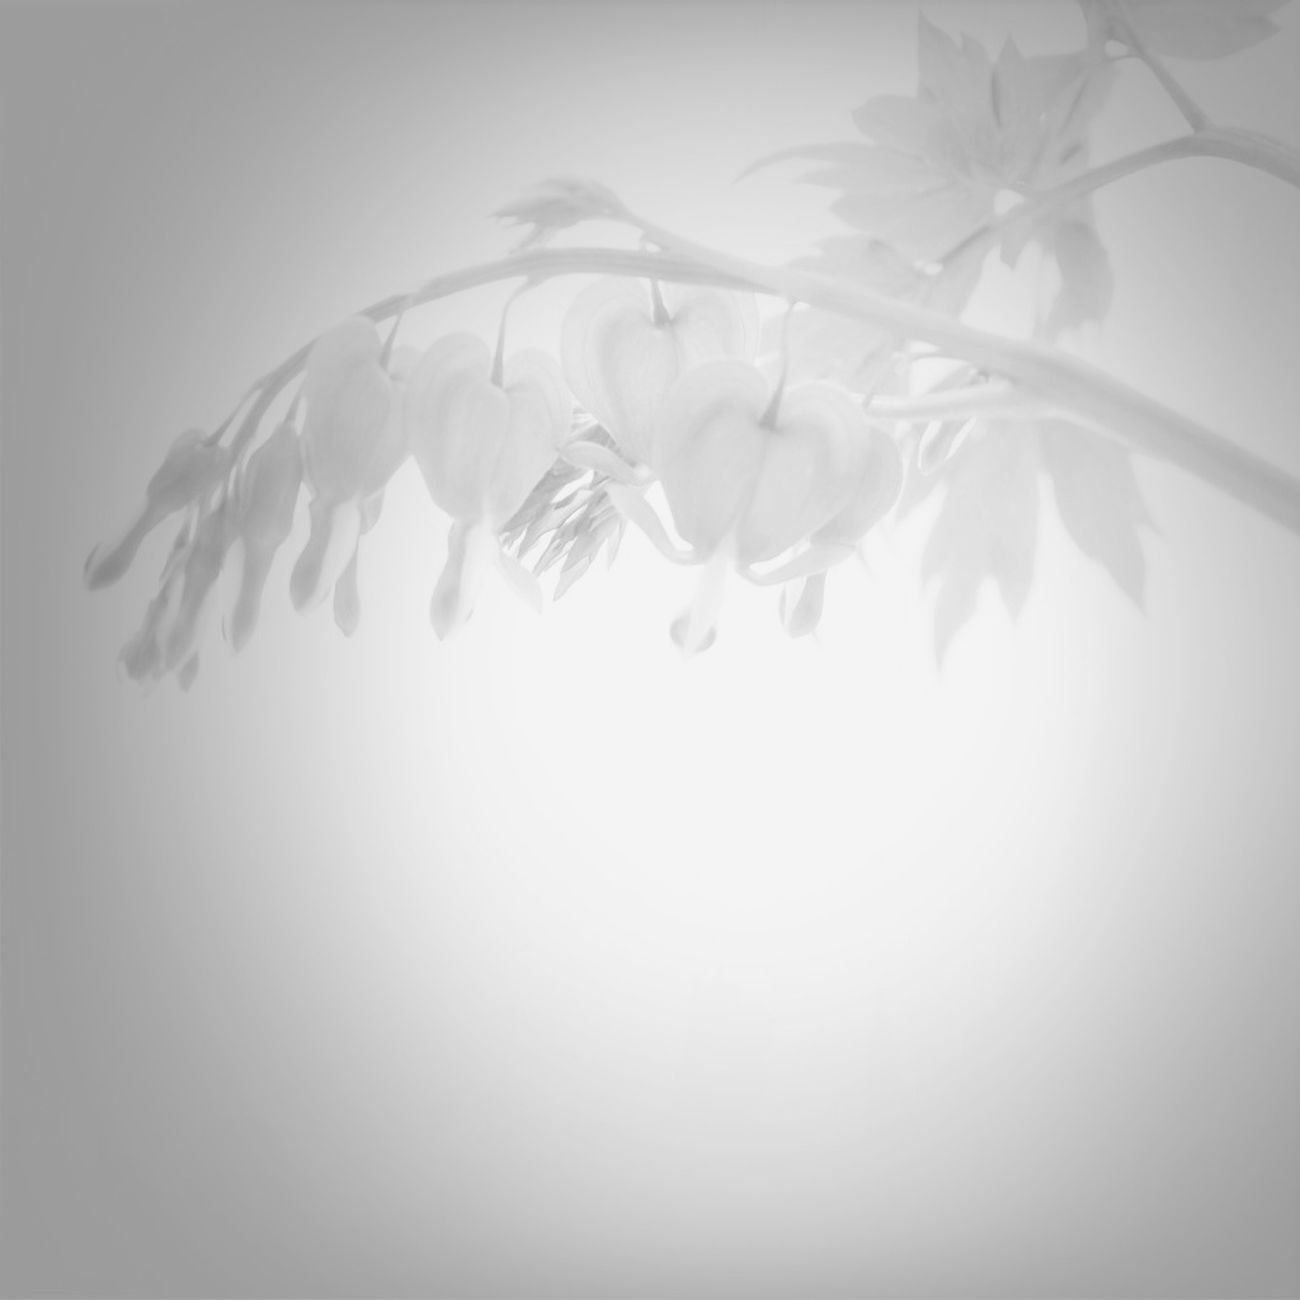 Flowers Blackandwhite Spring Flowers White Album